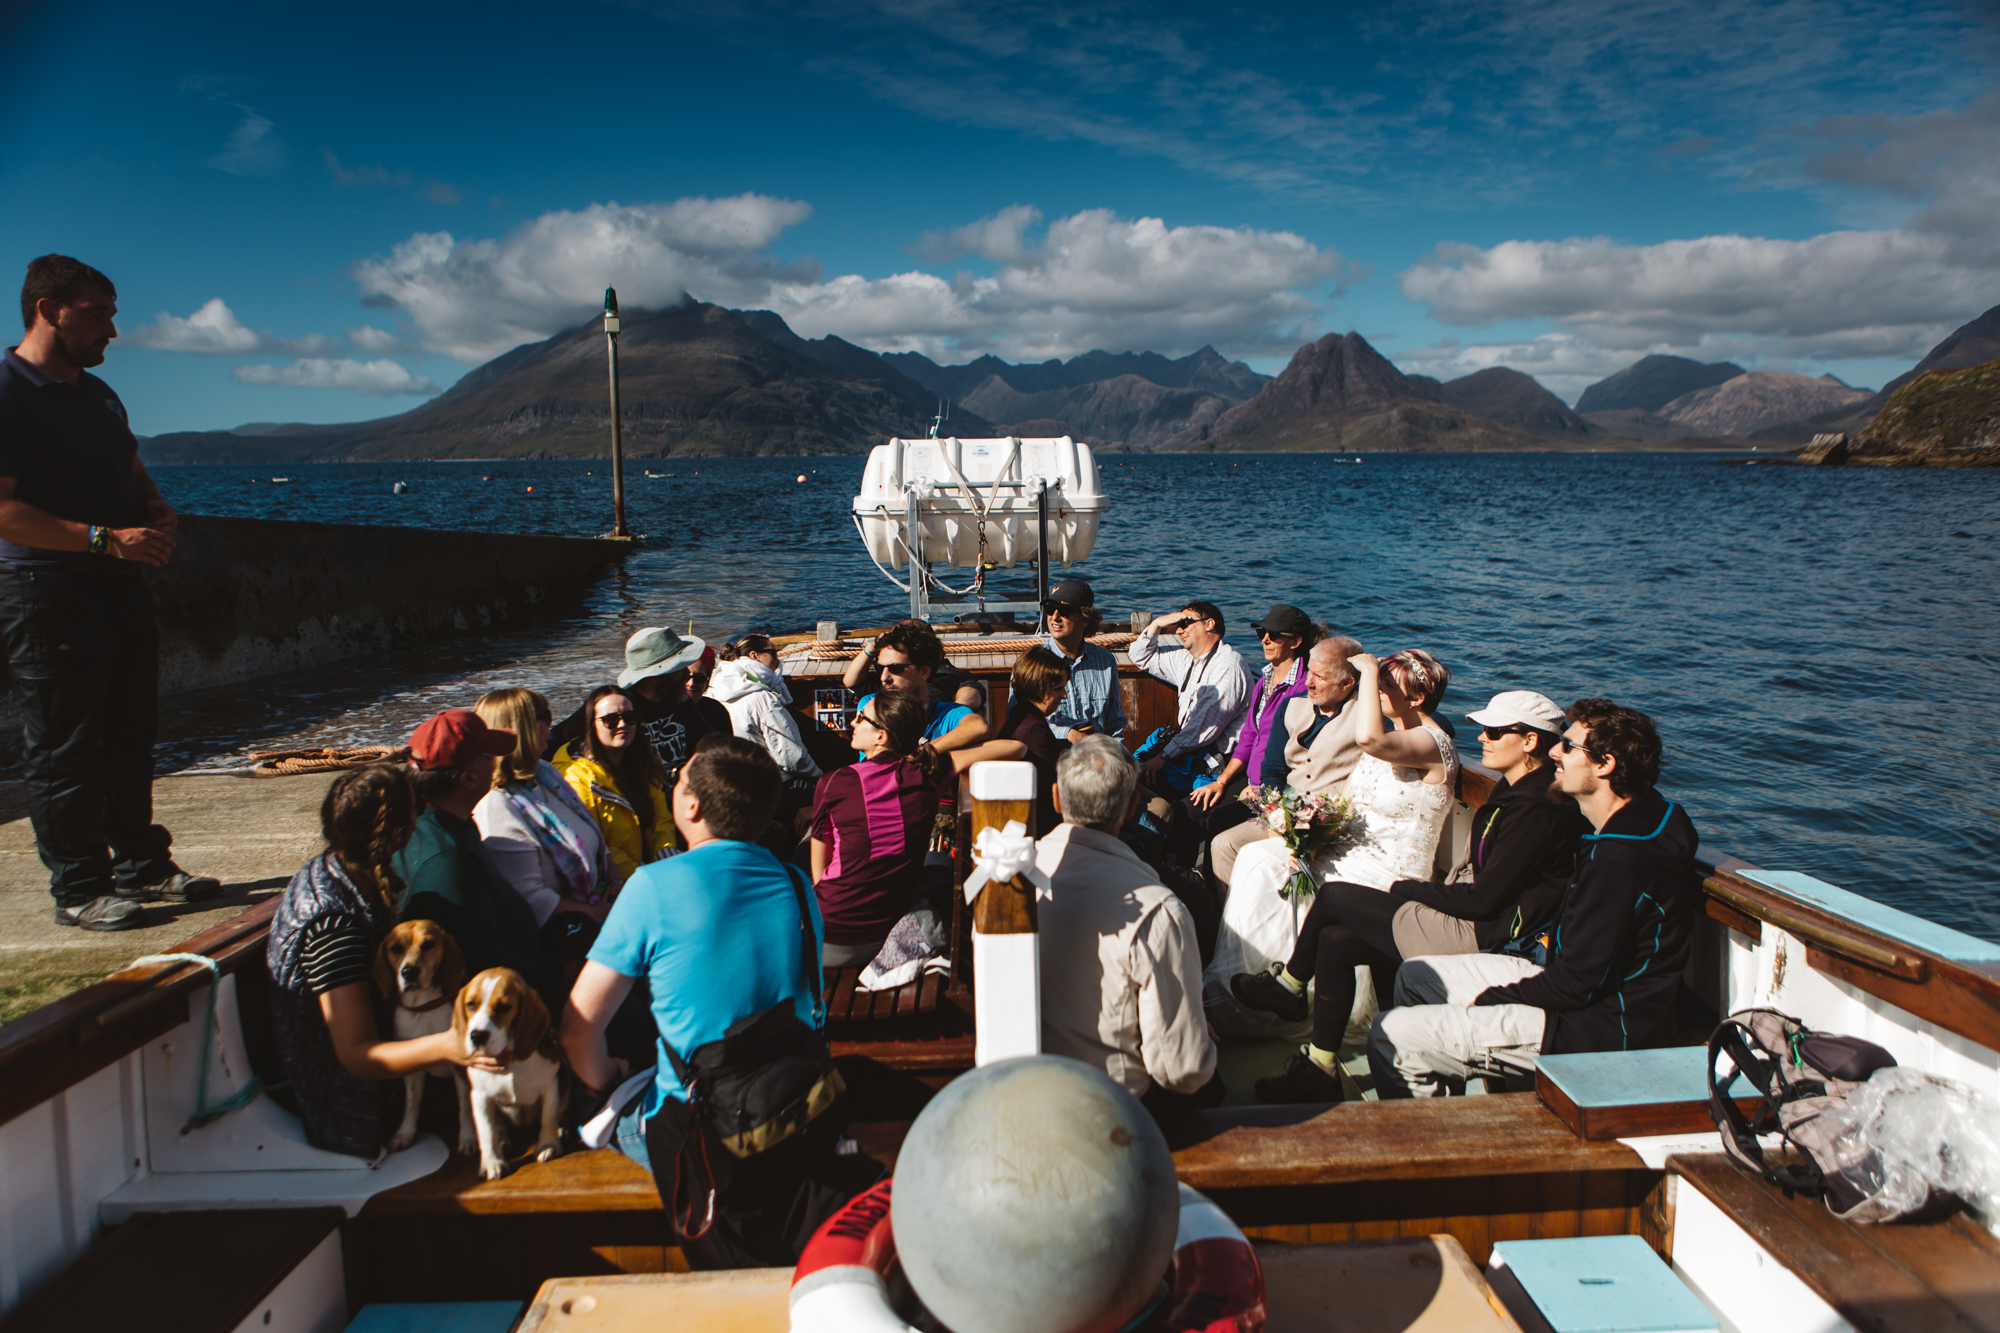 Passengers aboard Misty Isle Elgol sunny day view to Cuillin